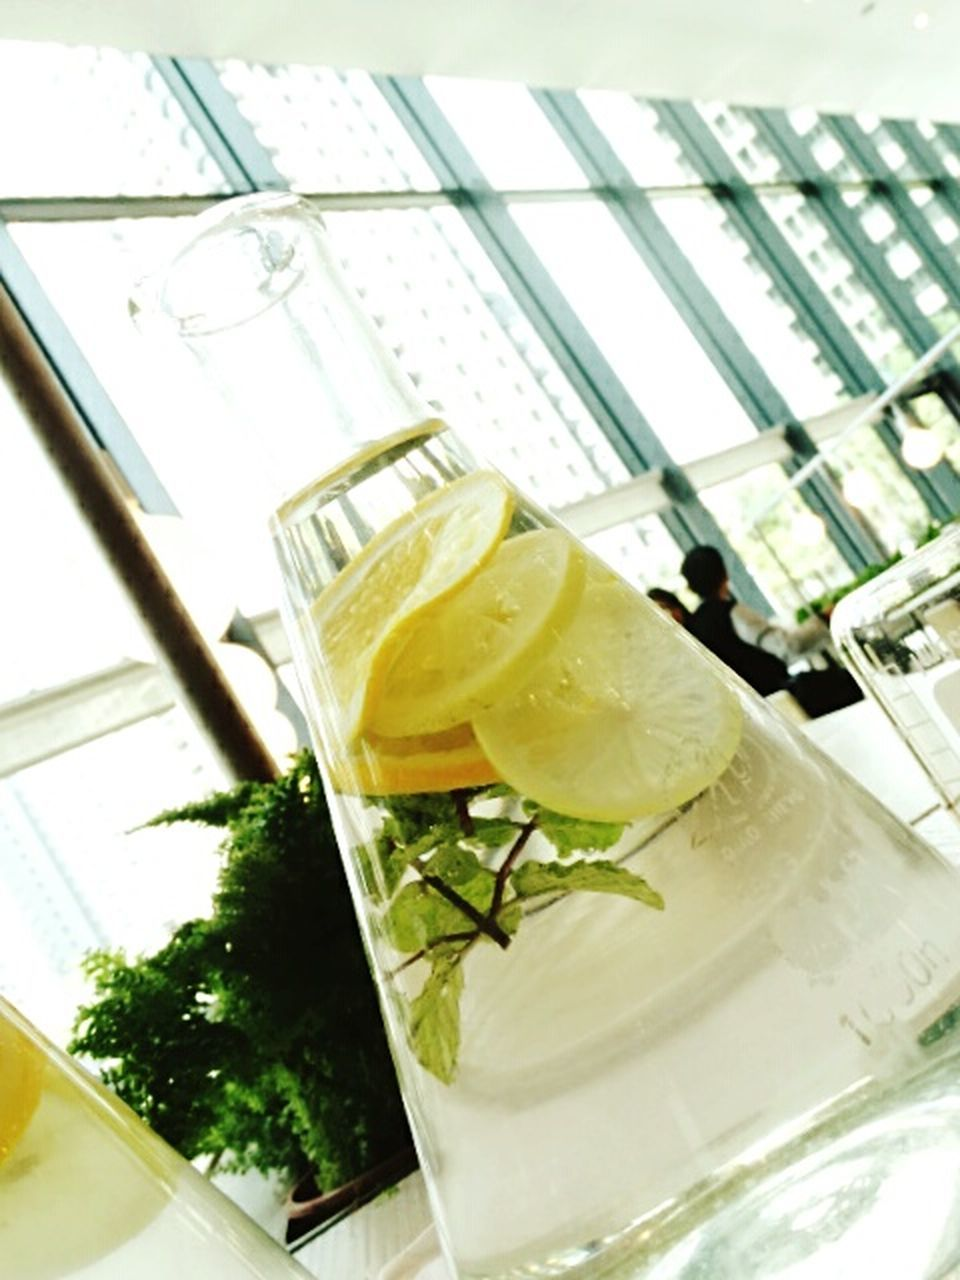 food and drink, drink, refreshment, indoors, drinking glass, freshness, healthy eating, no people, lime, mint leaf - culinary, close-up, food, mojito, day